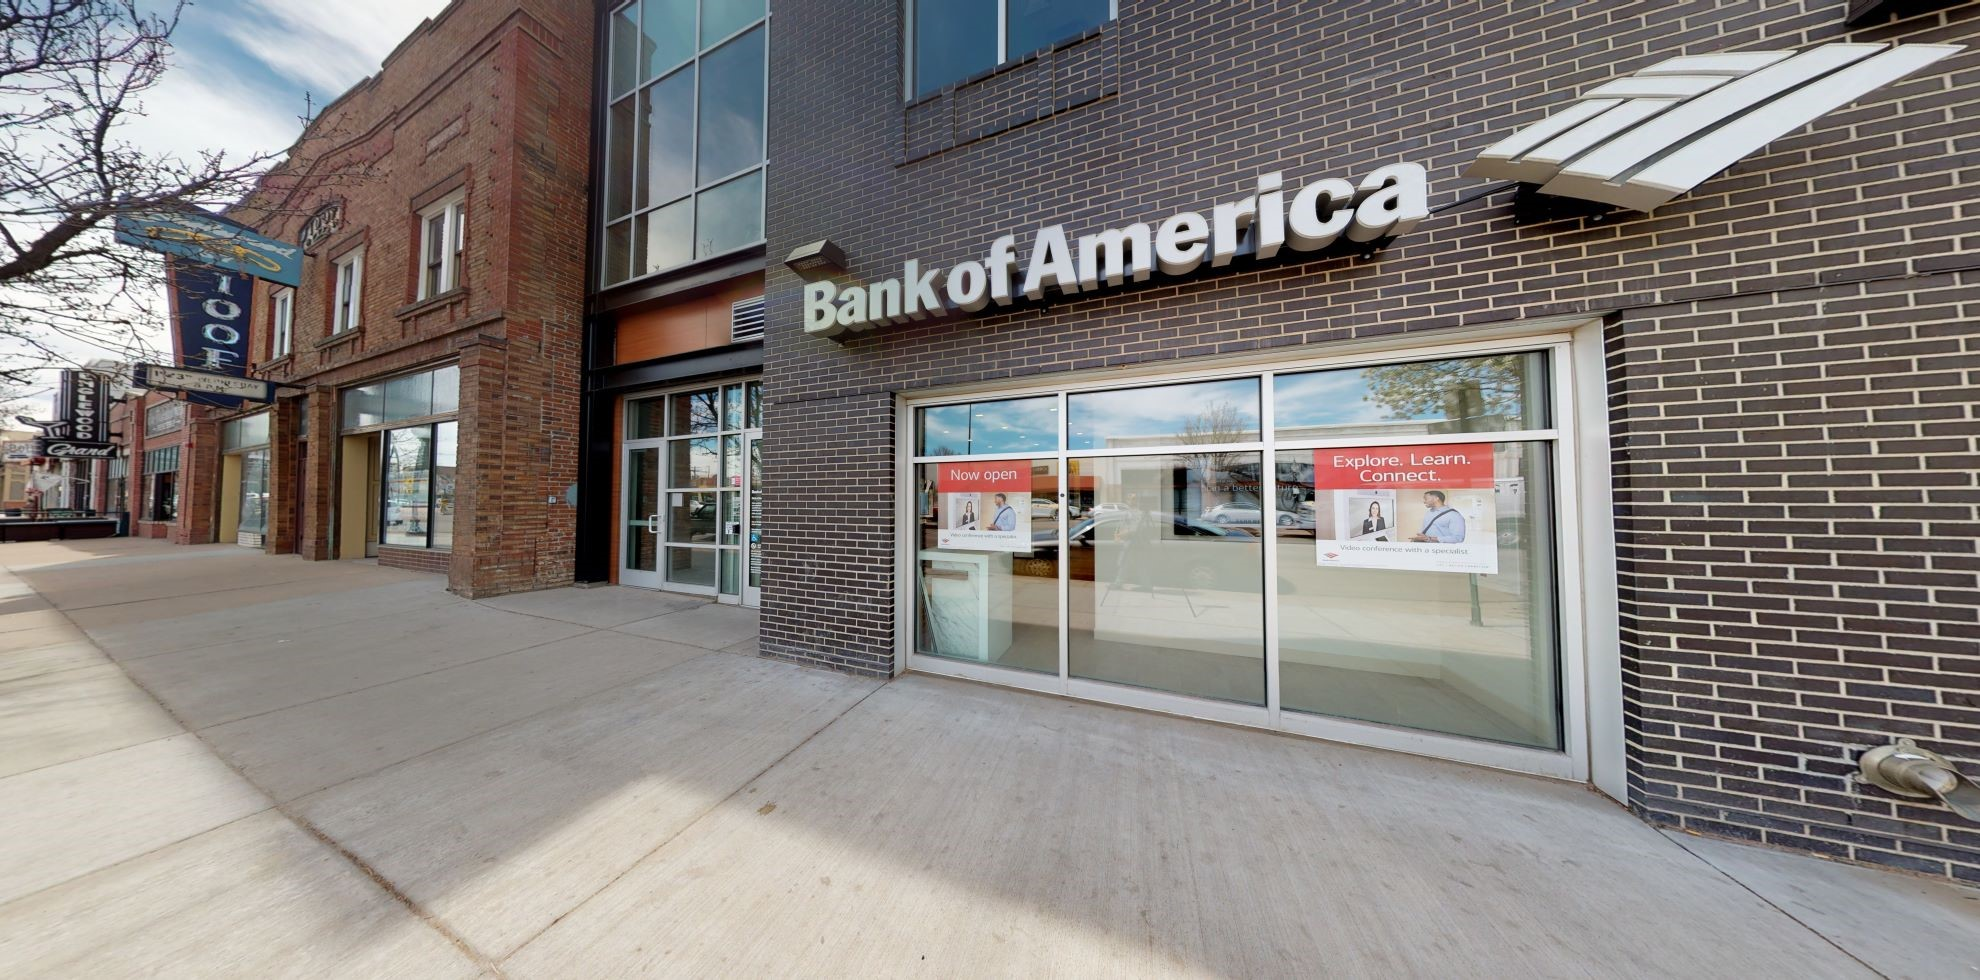 Bank of America Advanced Center with walk-up ATM   3401 S Broadway, Englewood, CO 80113